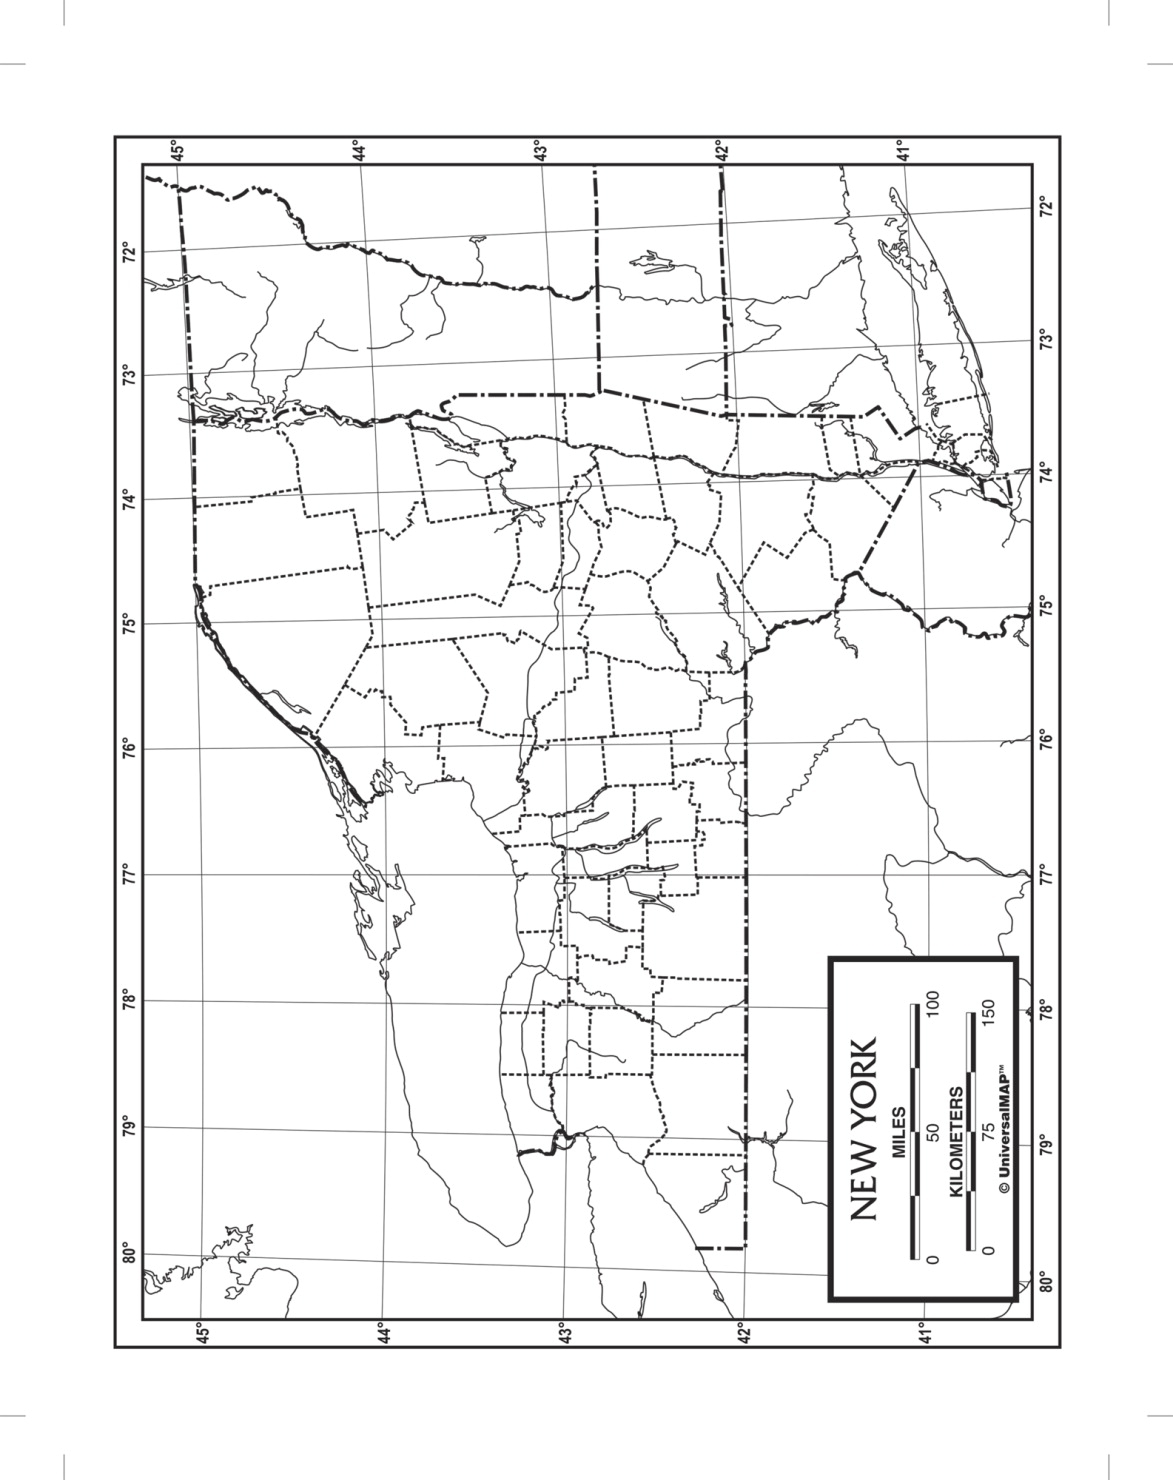 Kappa Map New York Outline Map; Laminated; 8-1/2 X 11 In; Pack Of 50 - 1573904 - Toys Literature For Social Studies 1573904